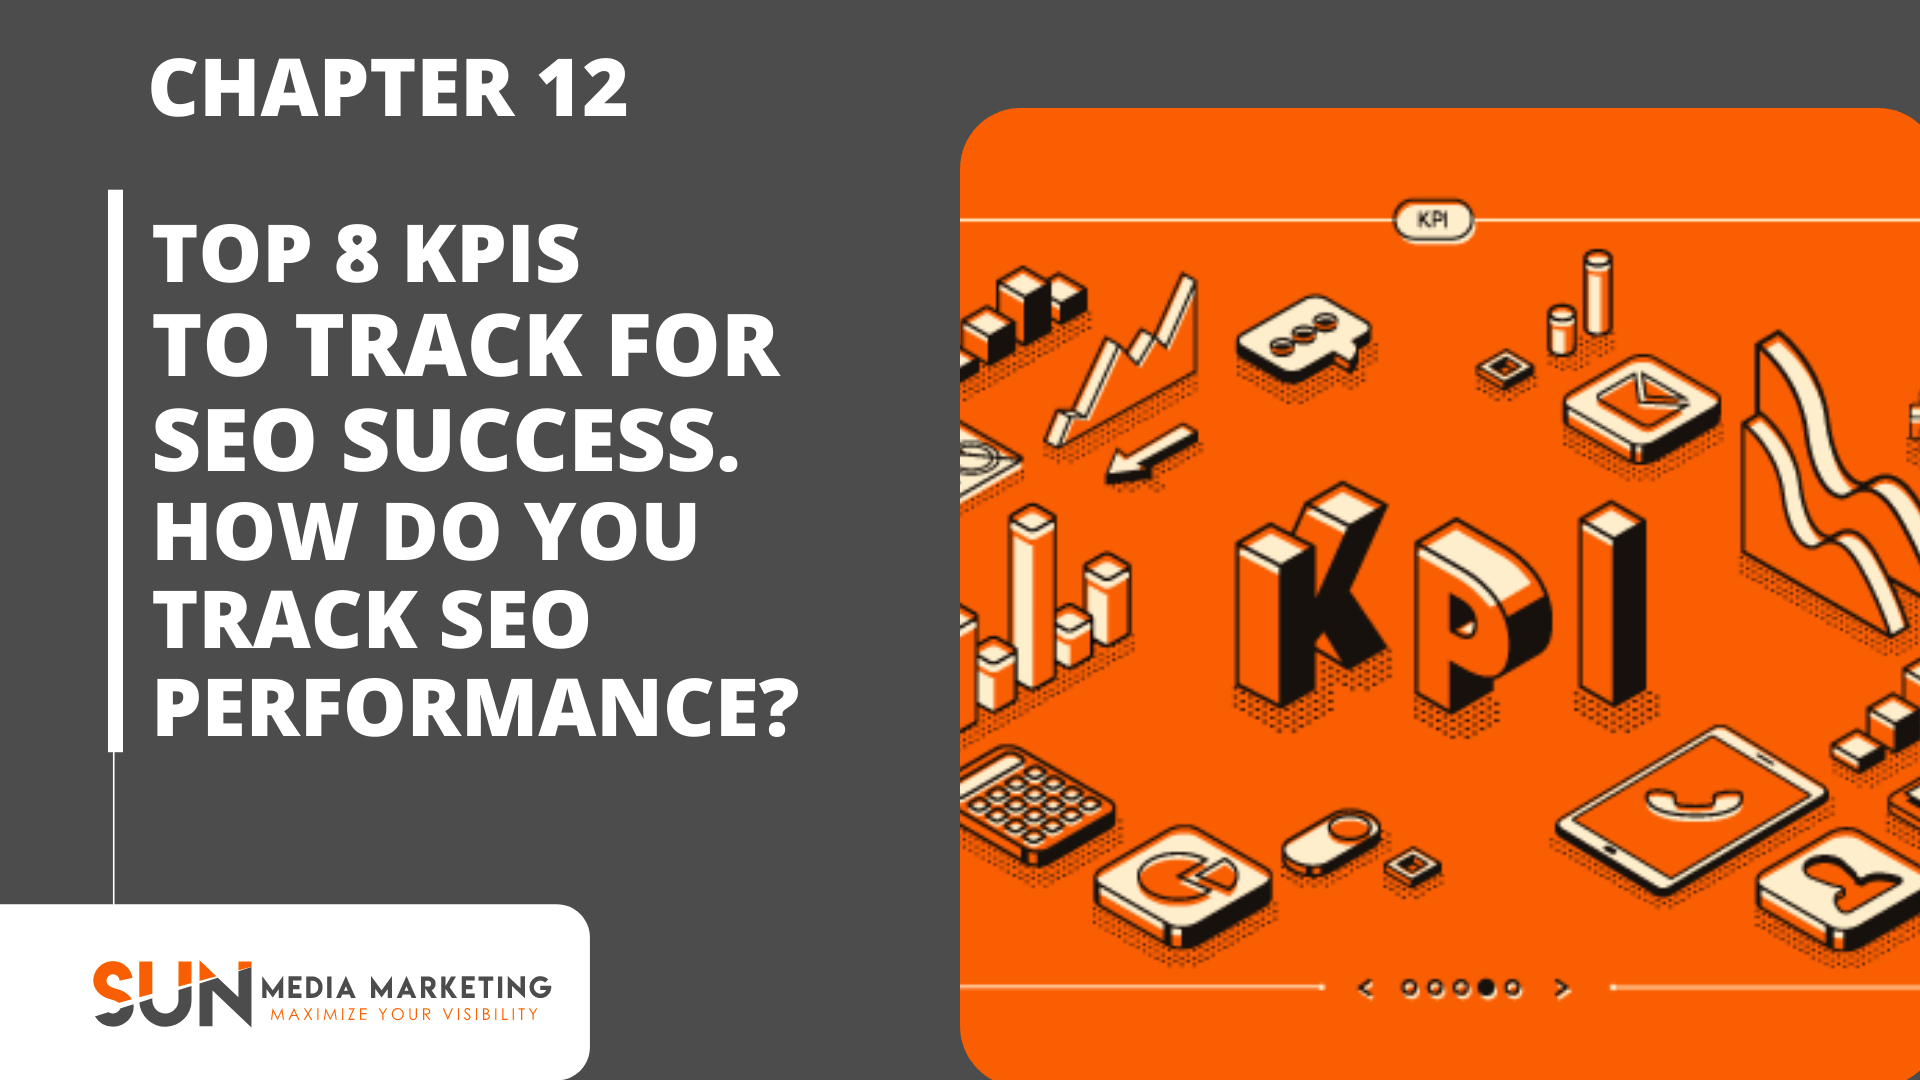 Top 8 KPIs to Track for SEO Success